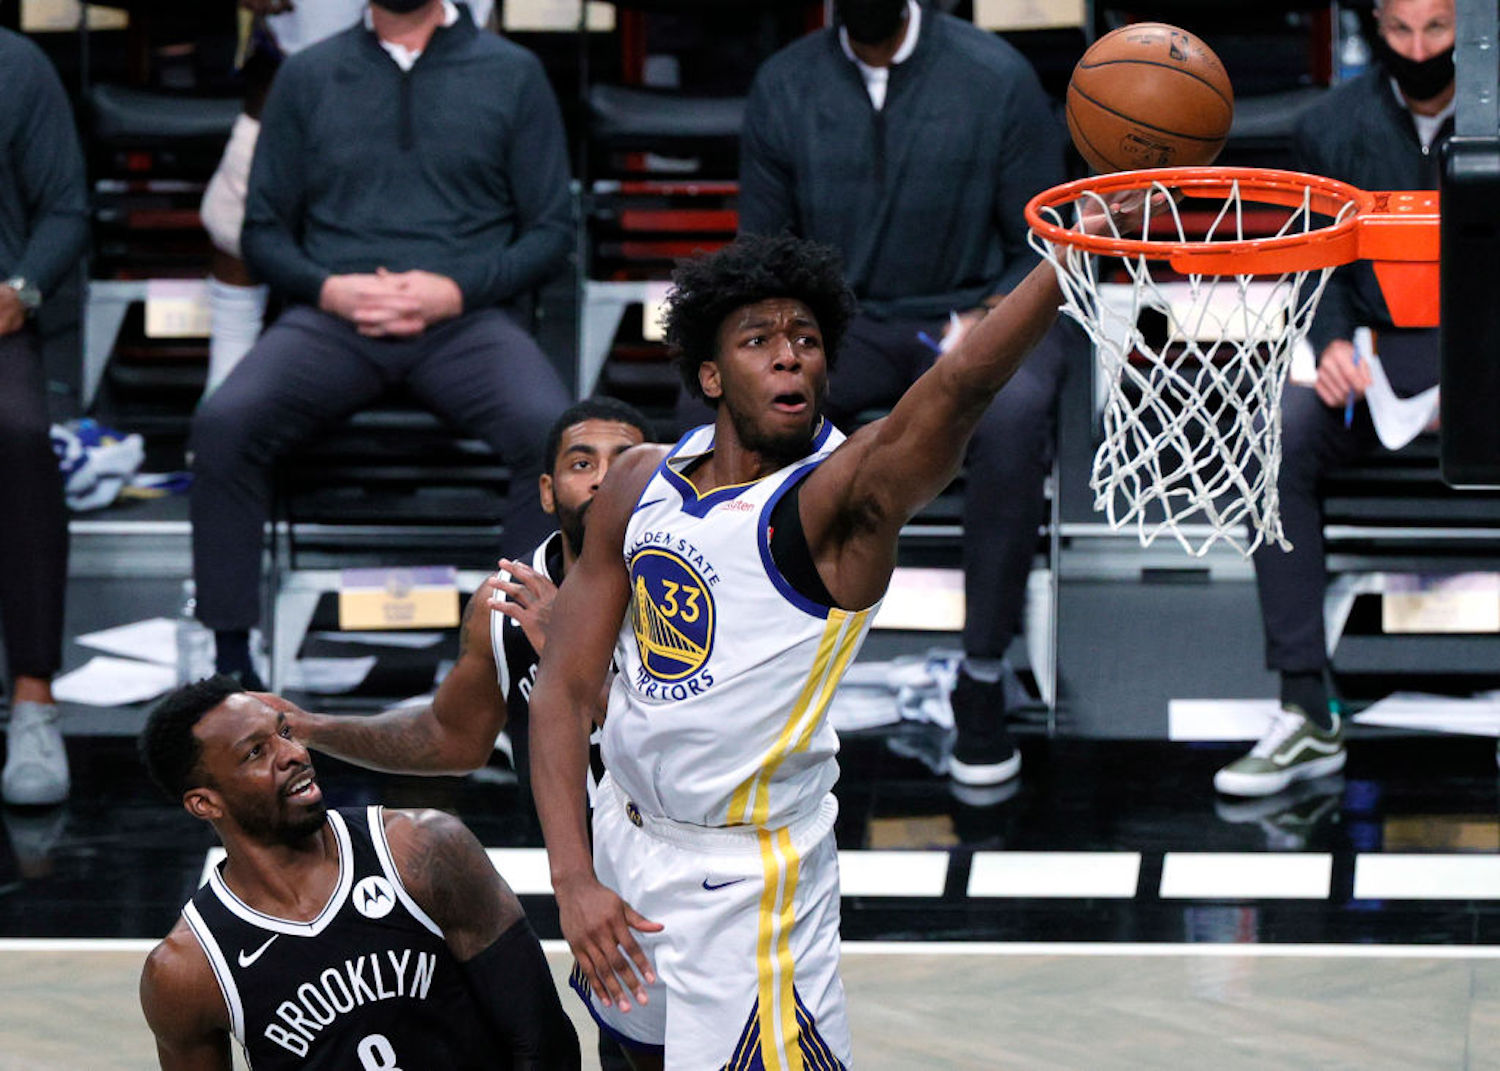 Not much went right for the Golden State Warriors on Tuesday night, but rookie first-round pick James Wiseman looked like the real deal.